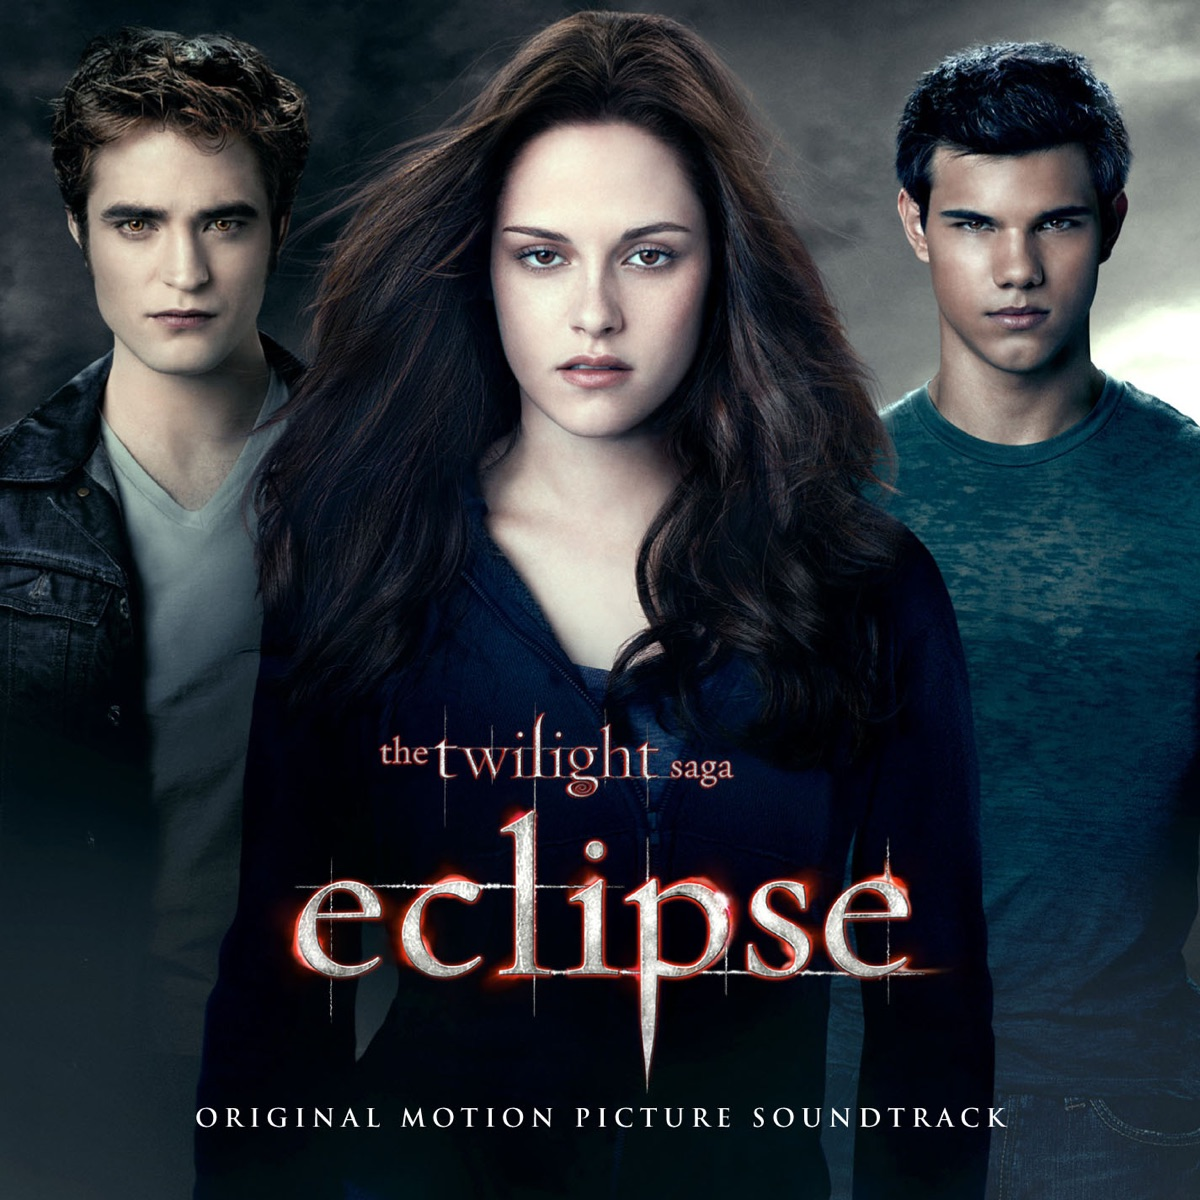 The Twilight Saga Eclipse Original Motion Picture Soundtrack Deluxe Version Various Artists CD cover